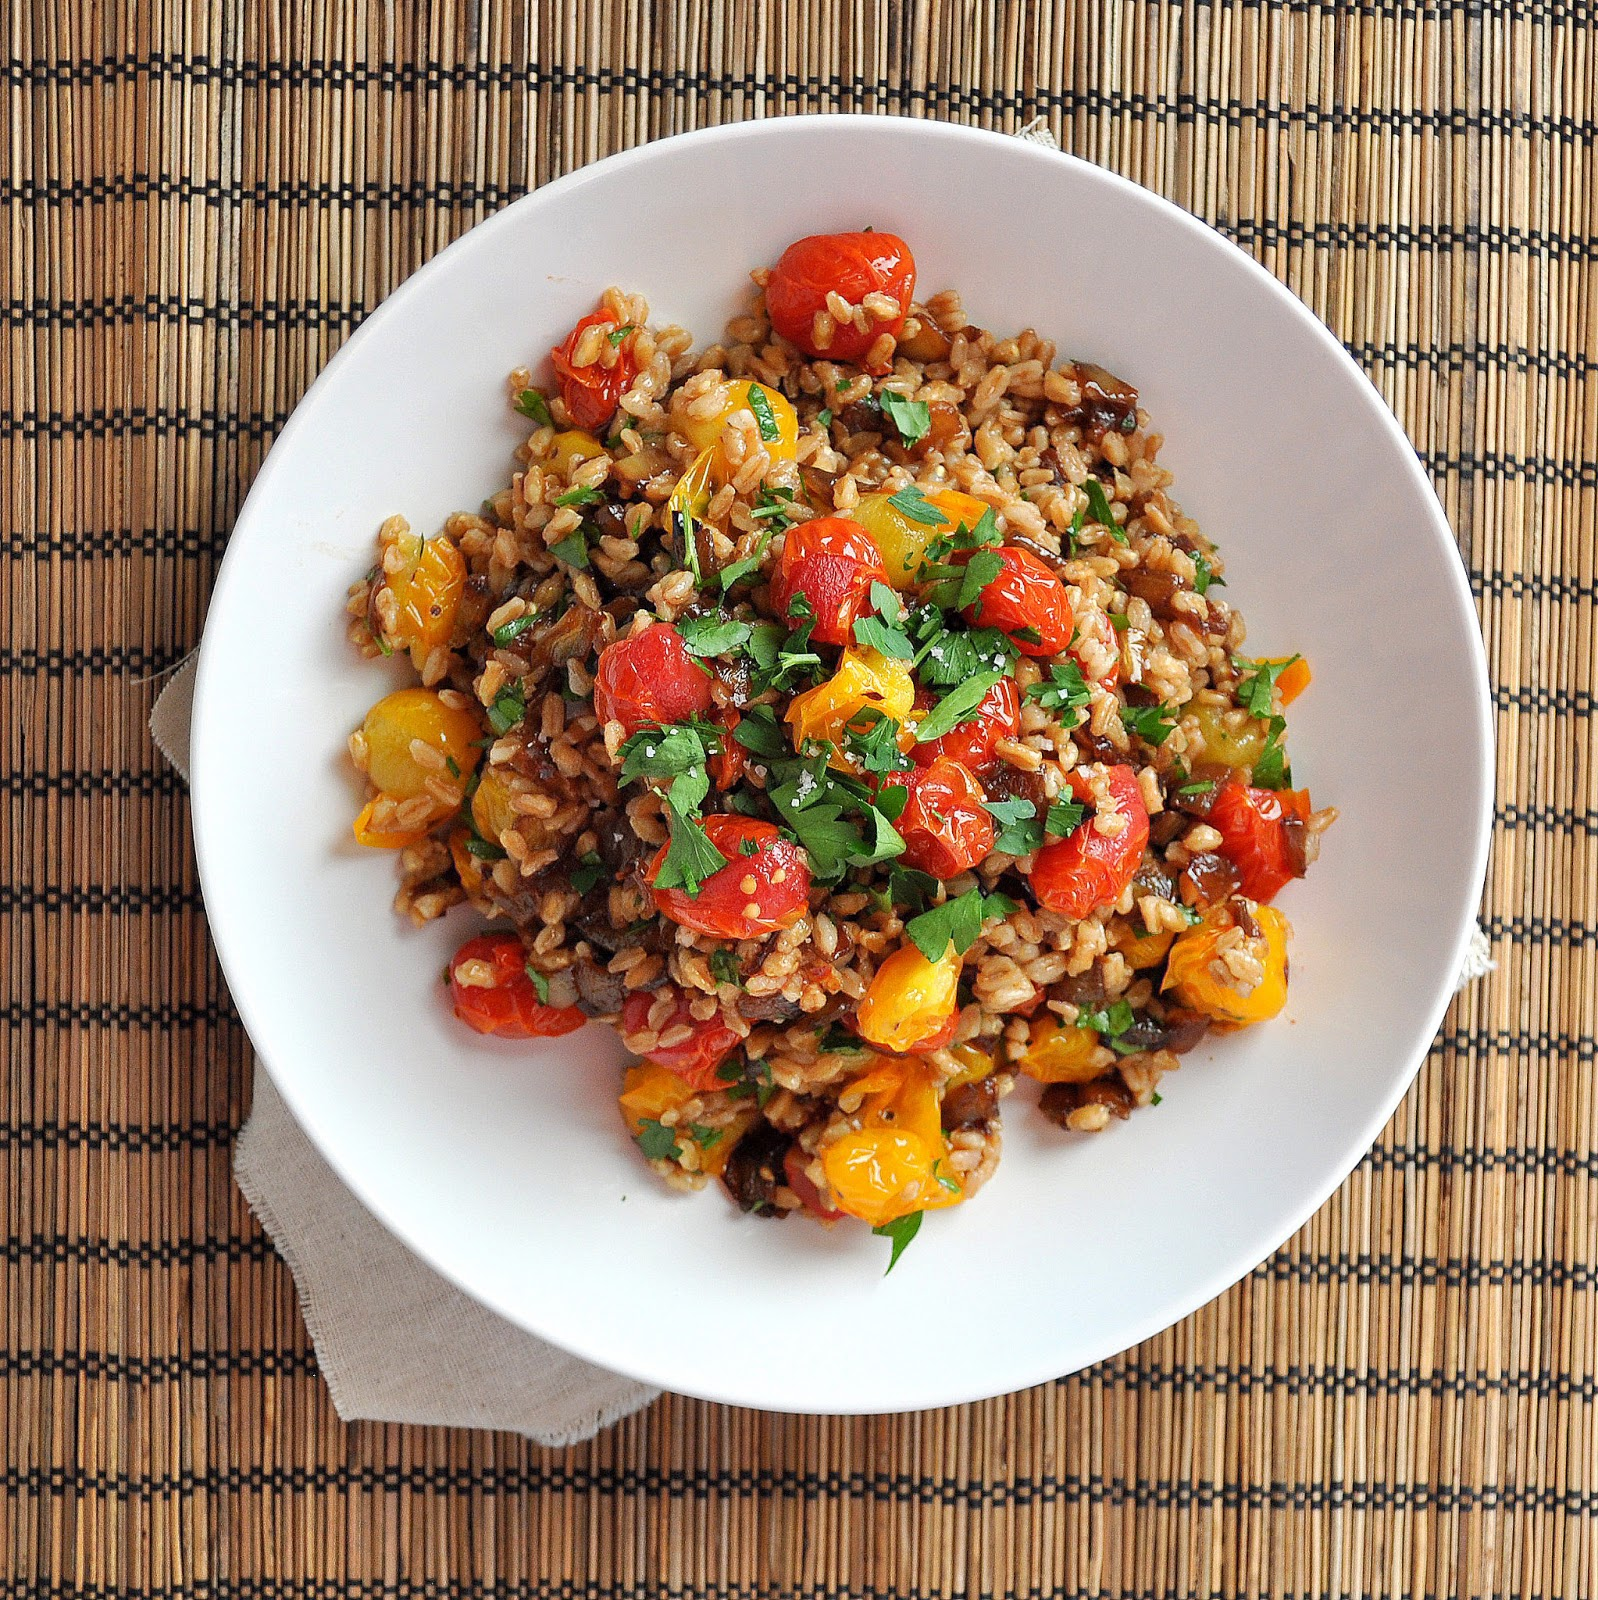 ... : Roasted Tomato and Caramelized Onion Farro Salad with Brown Butter